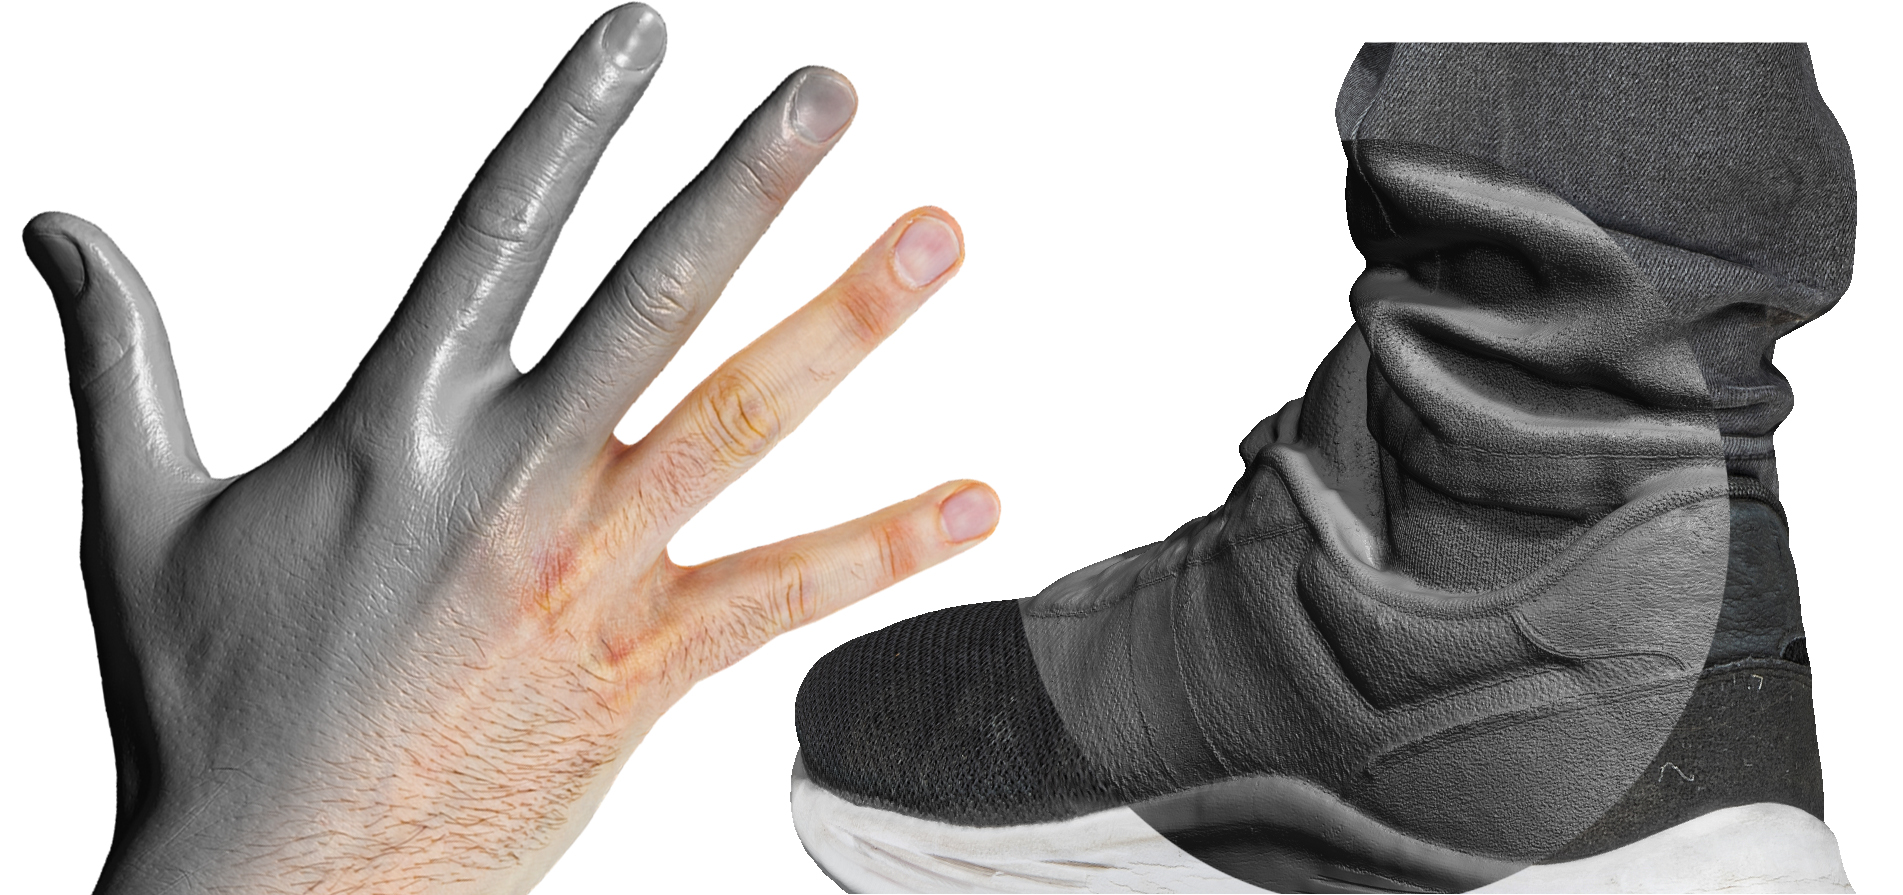 hand feet body parts scanning session